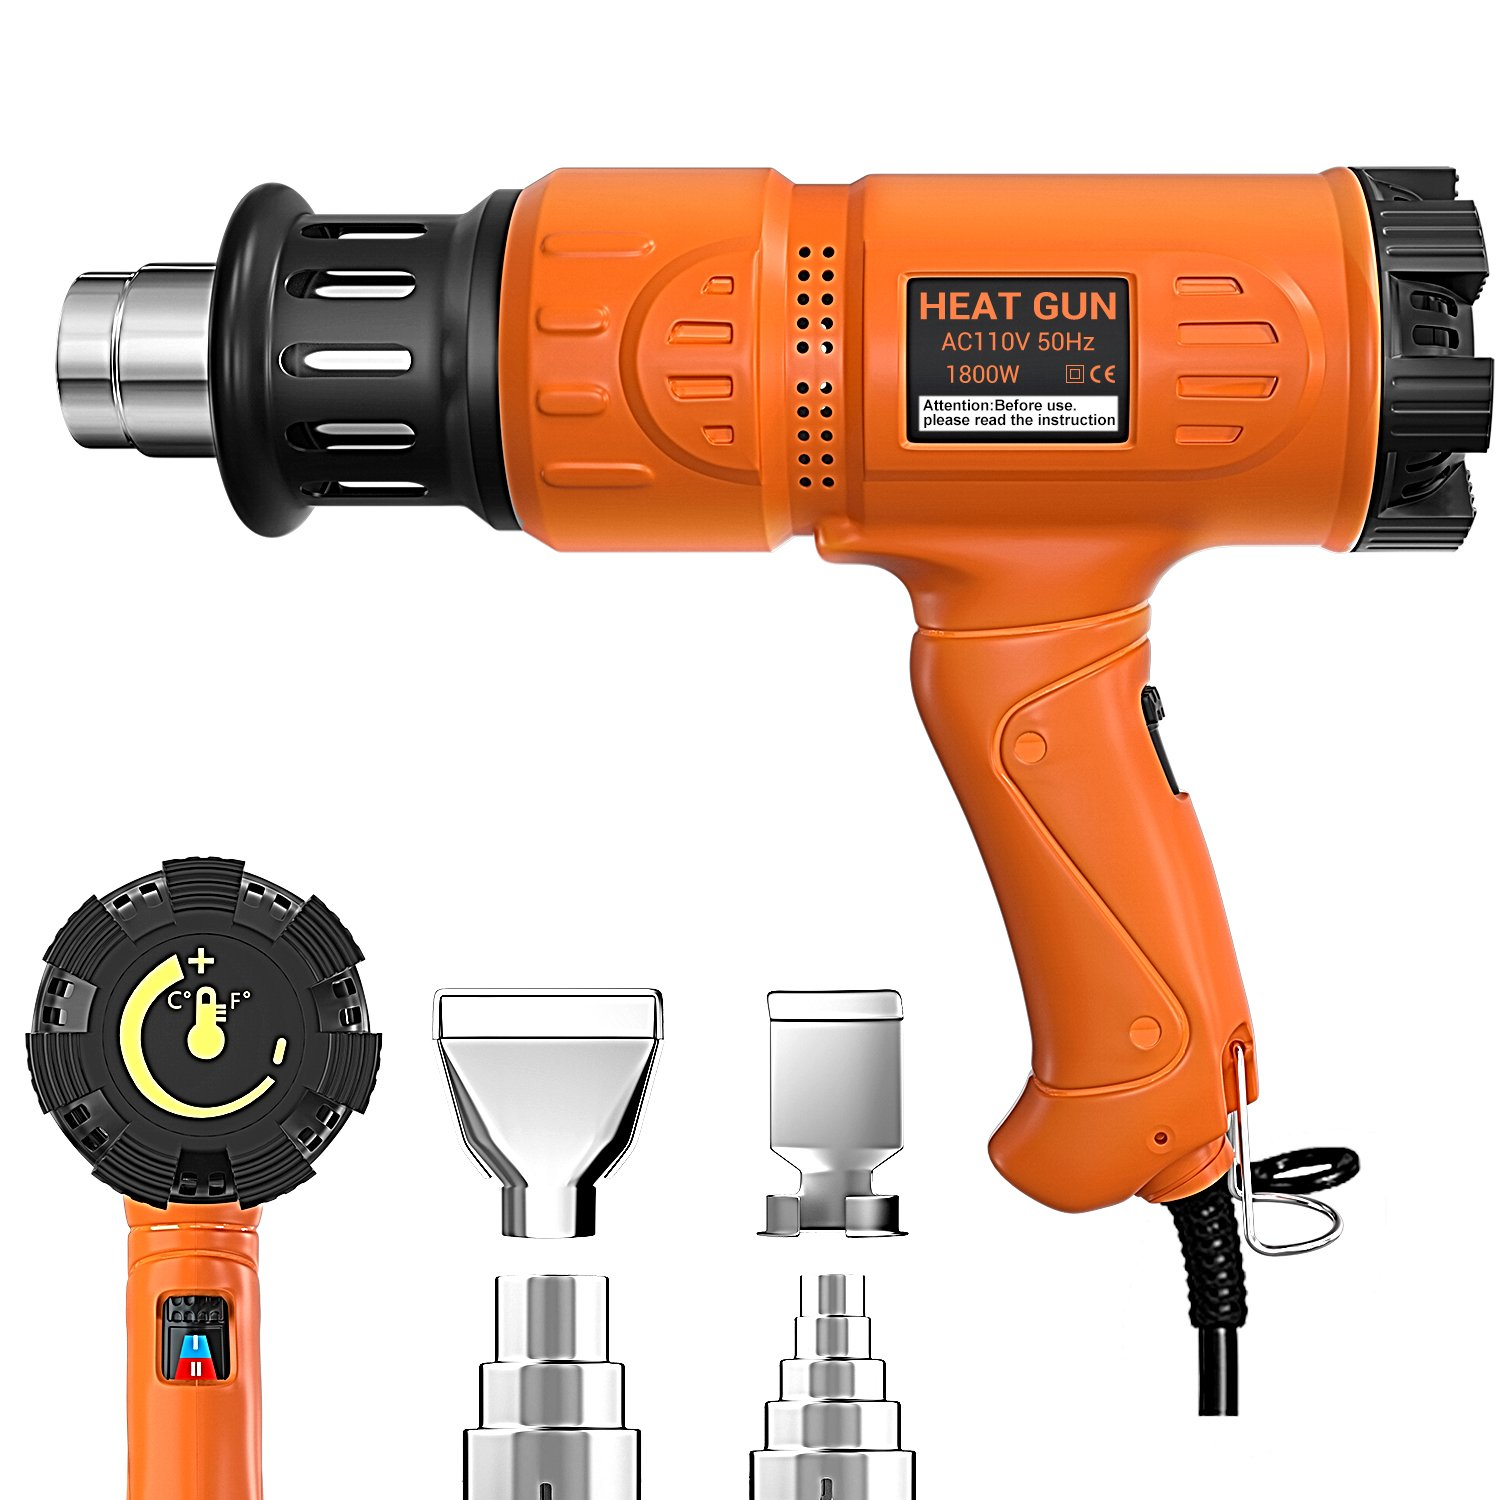 Heat Gun 1800W Heavy Duty Hot Air Gun Variable Temperature Control with 2-Temp Settings 4 Nozzles 140℉~1112℉(60℃- 600℃)with Overload Protection for Stripping Paint, Bending Pipes, Lighting BBQ